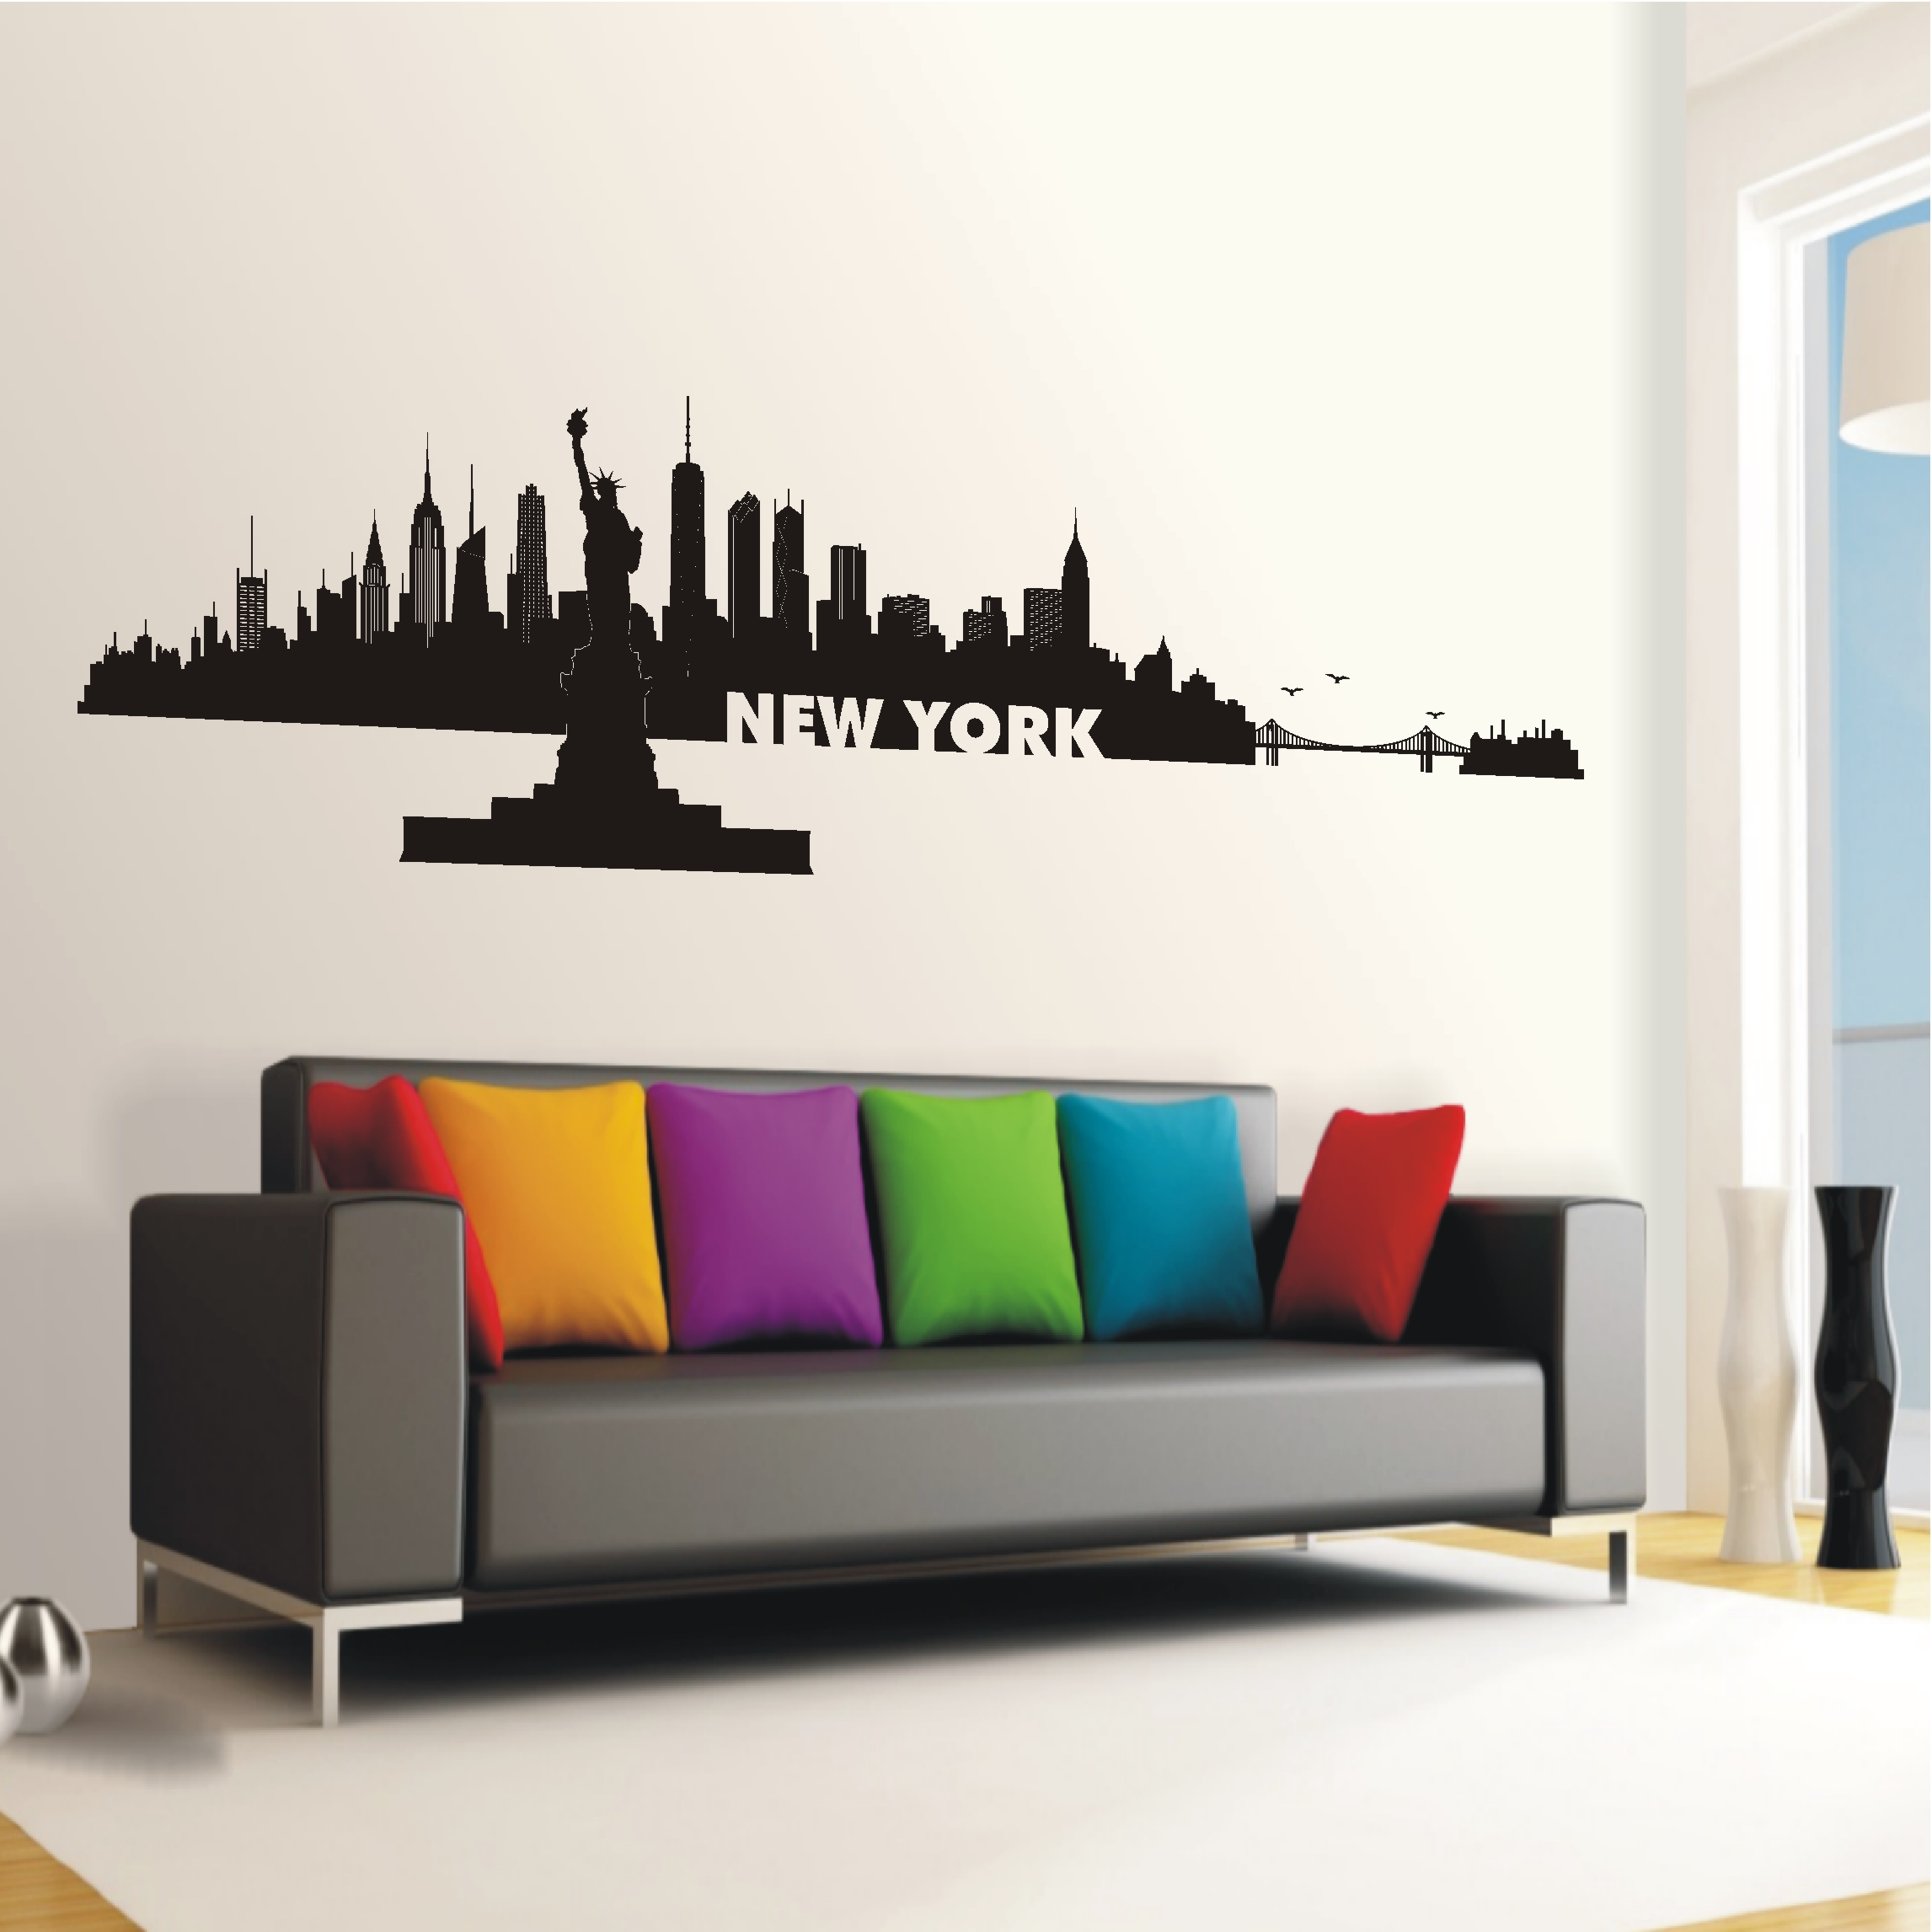 deko shop wandtattoo skyline new york deko shop. Black Bedroom Furniture Sets. Home Design Ideas